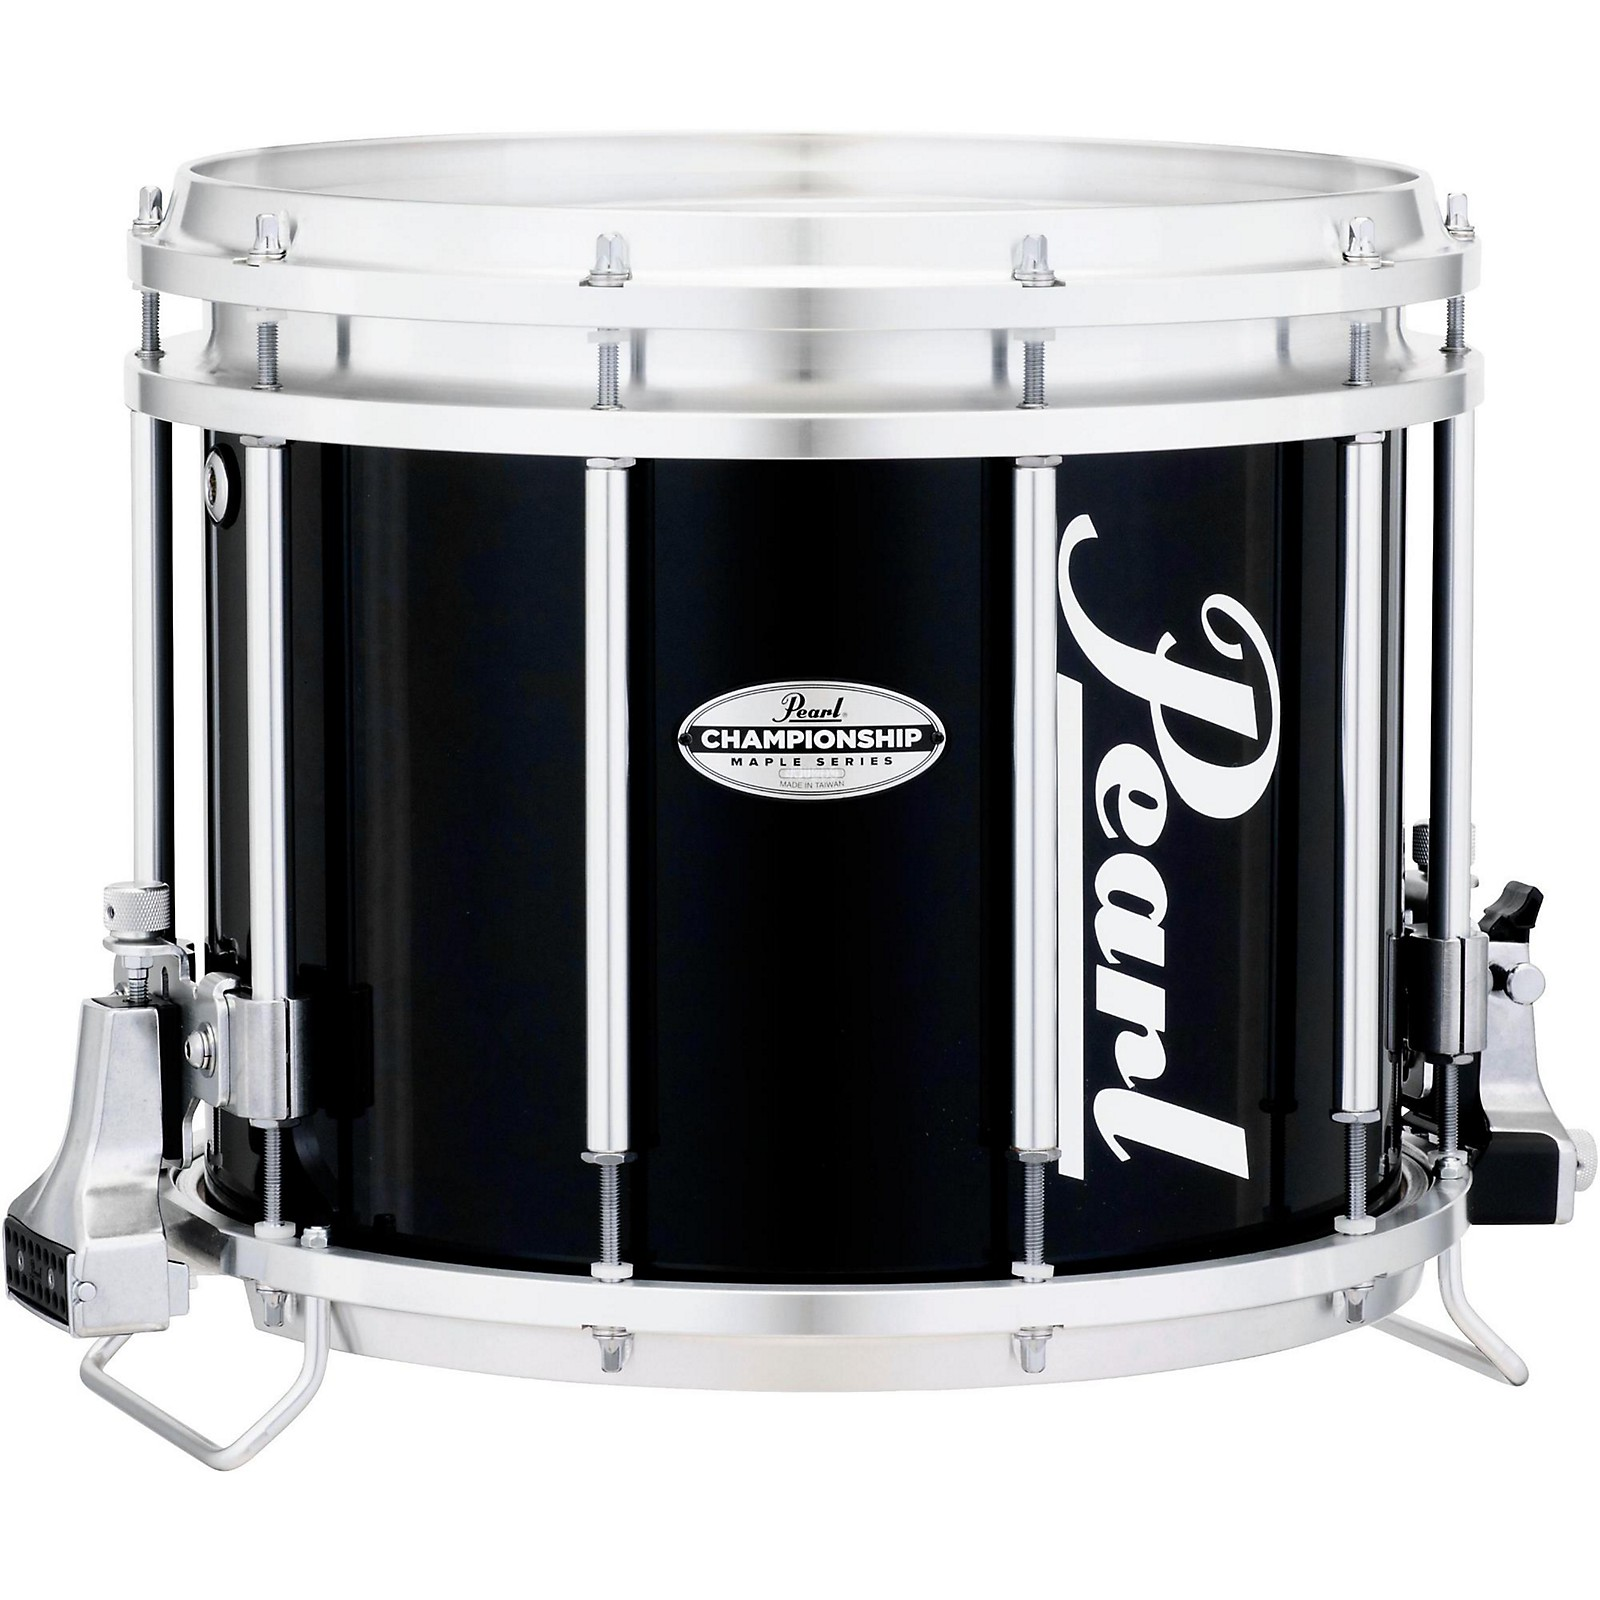 Pearl Championship Maple FFX Marching Snare Drum 14 x 12 in. Midnight Black  | Guitar Center